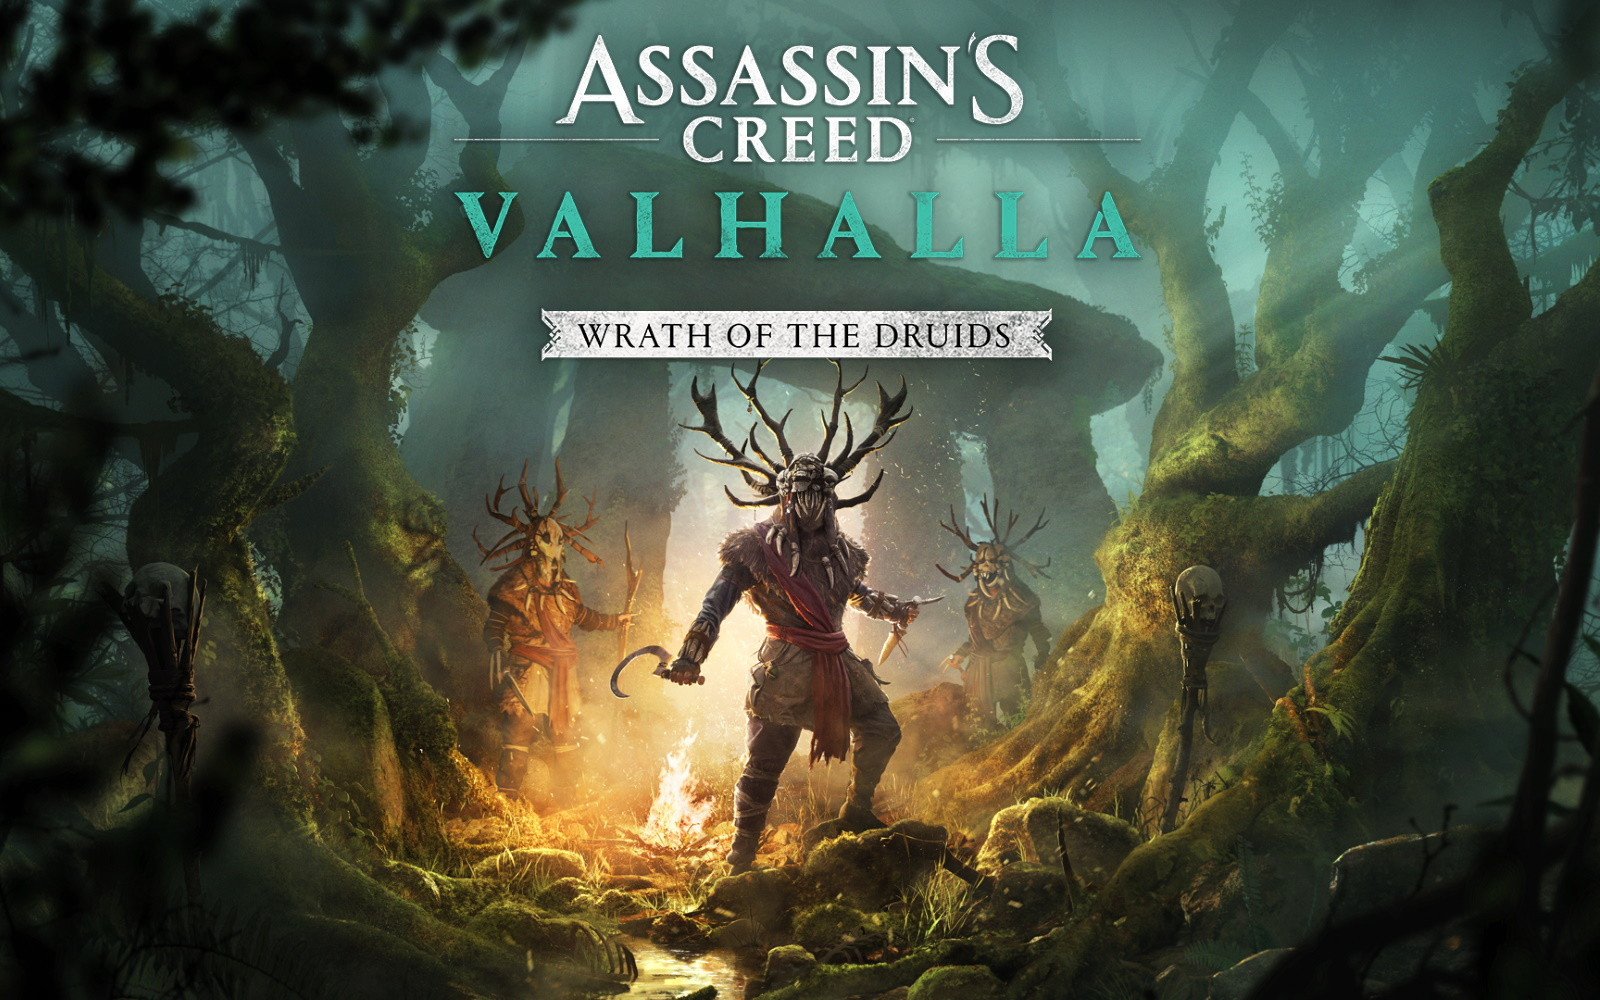 Assassin's Creed Valhalla Expansion Will Sail To Ireland Next Year